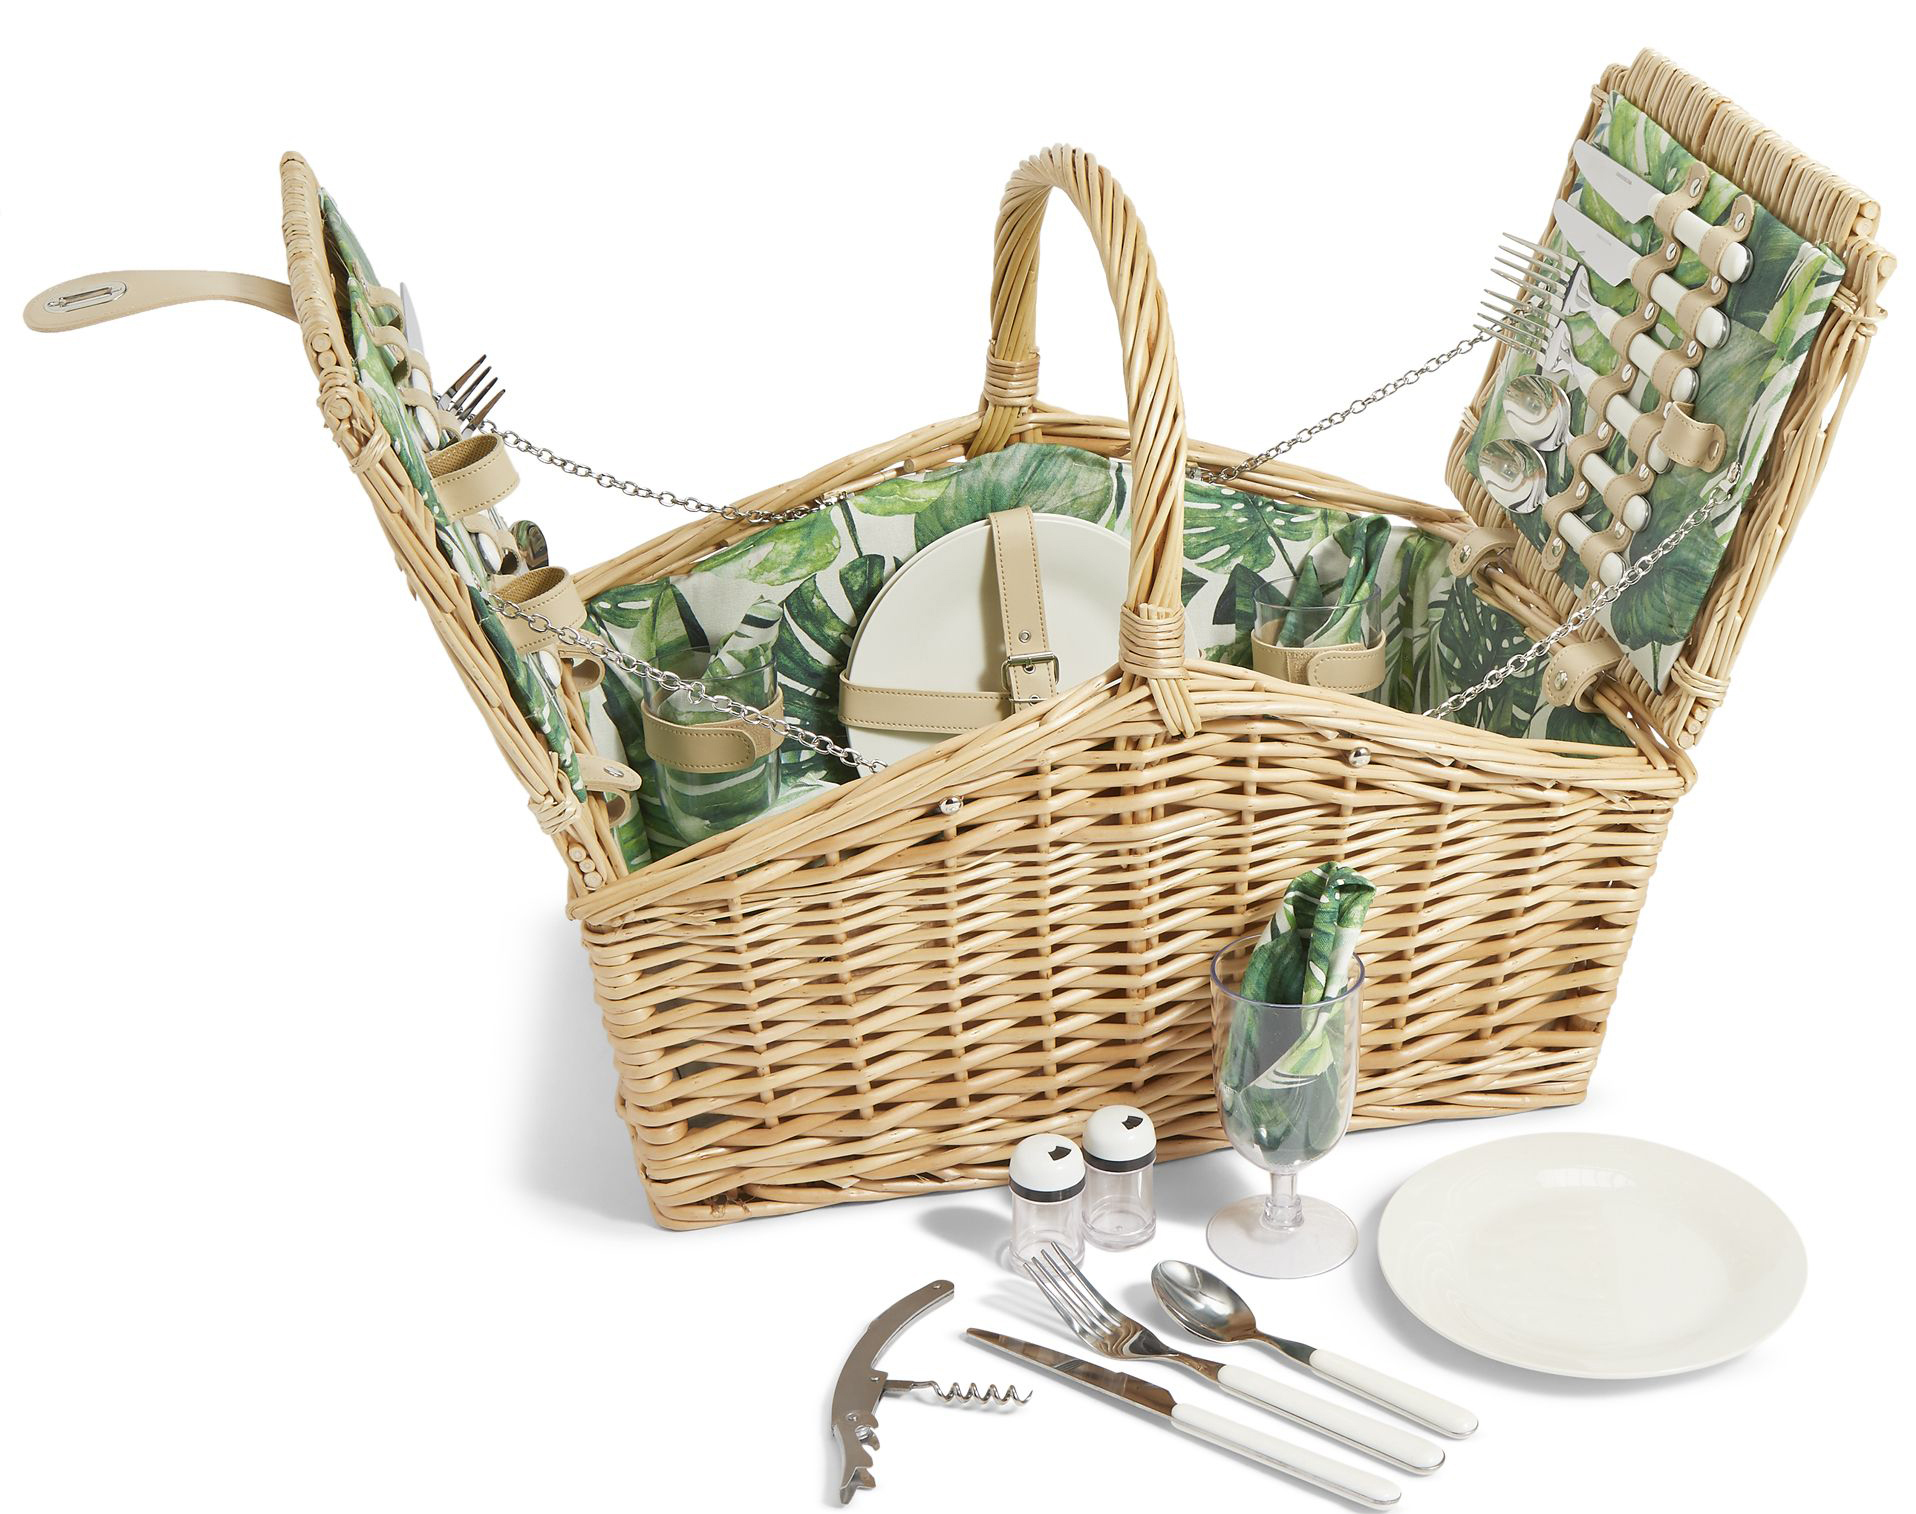 M&S Four Person Fresh Greens Hamper